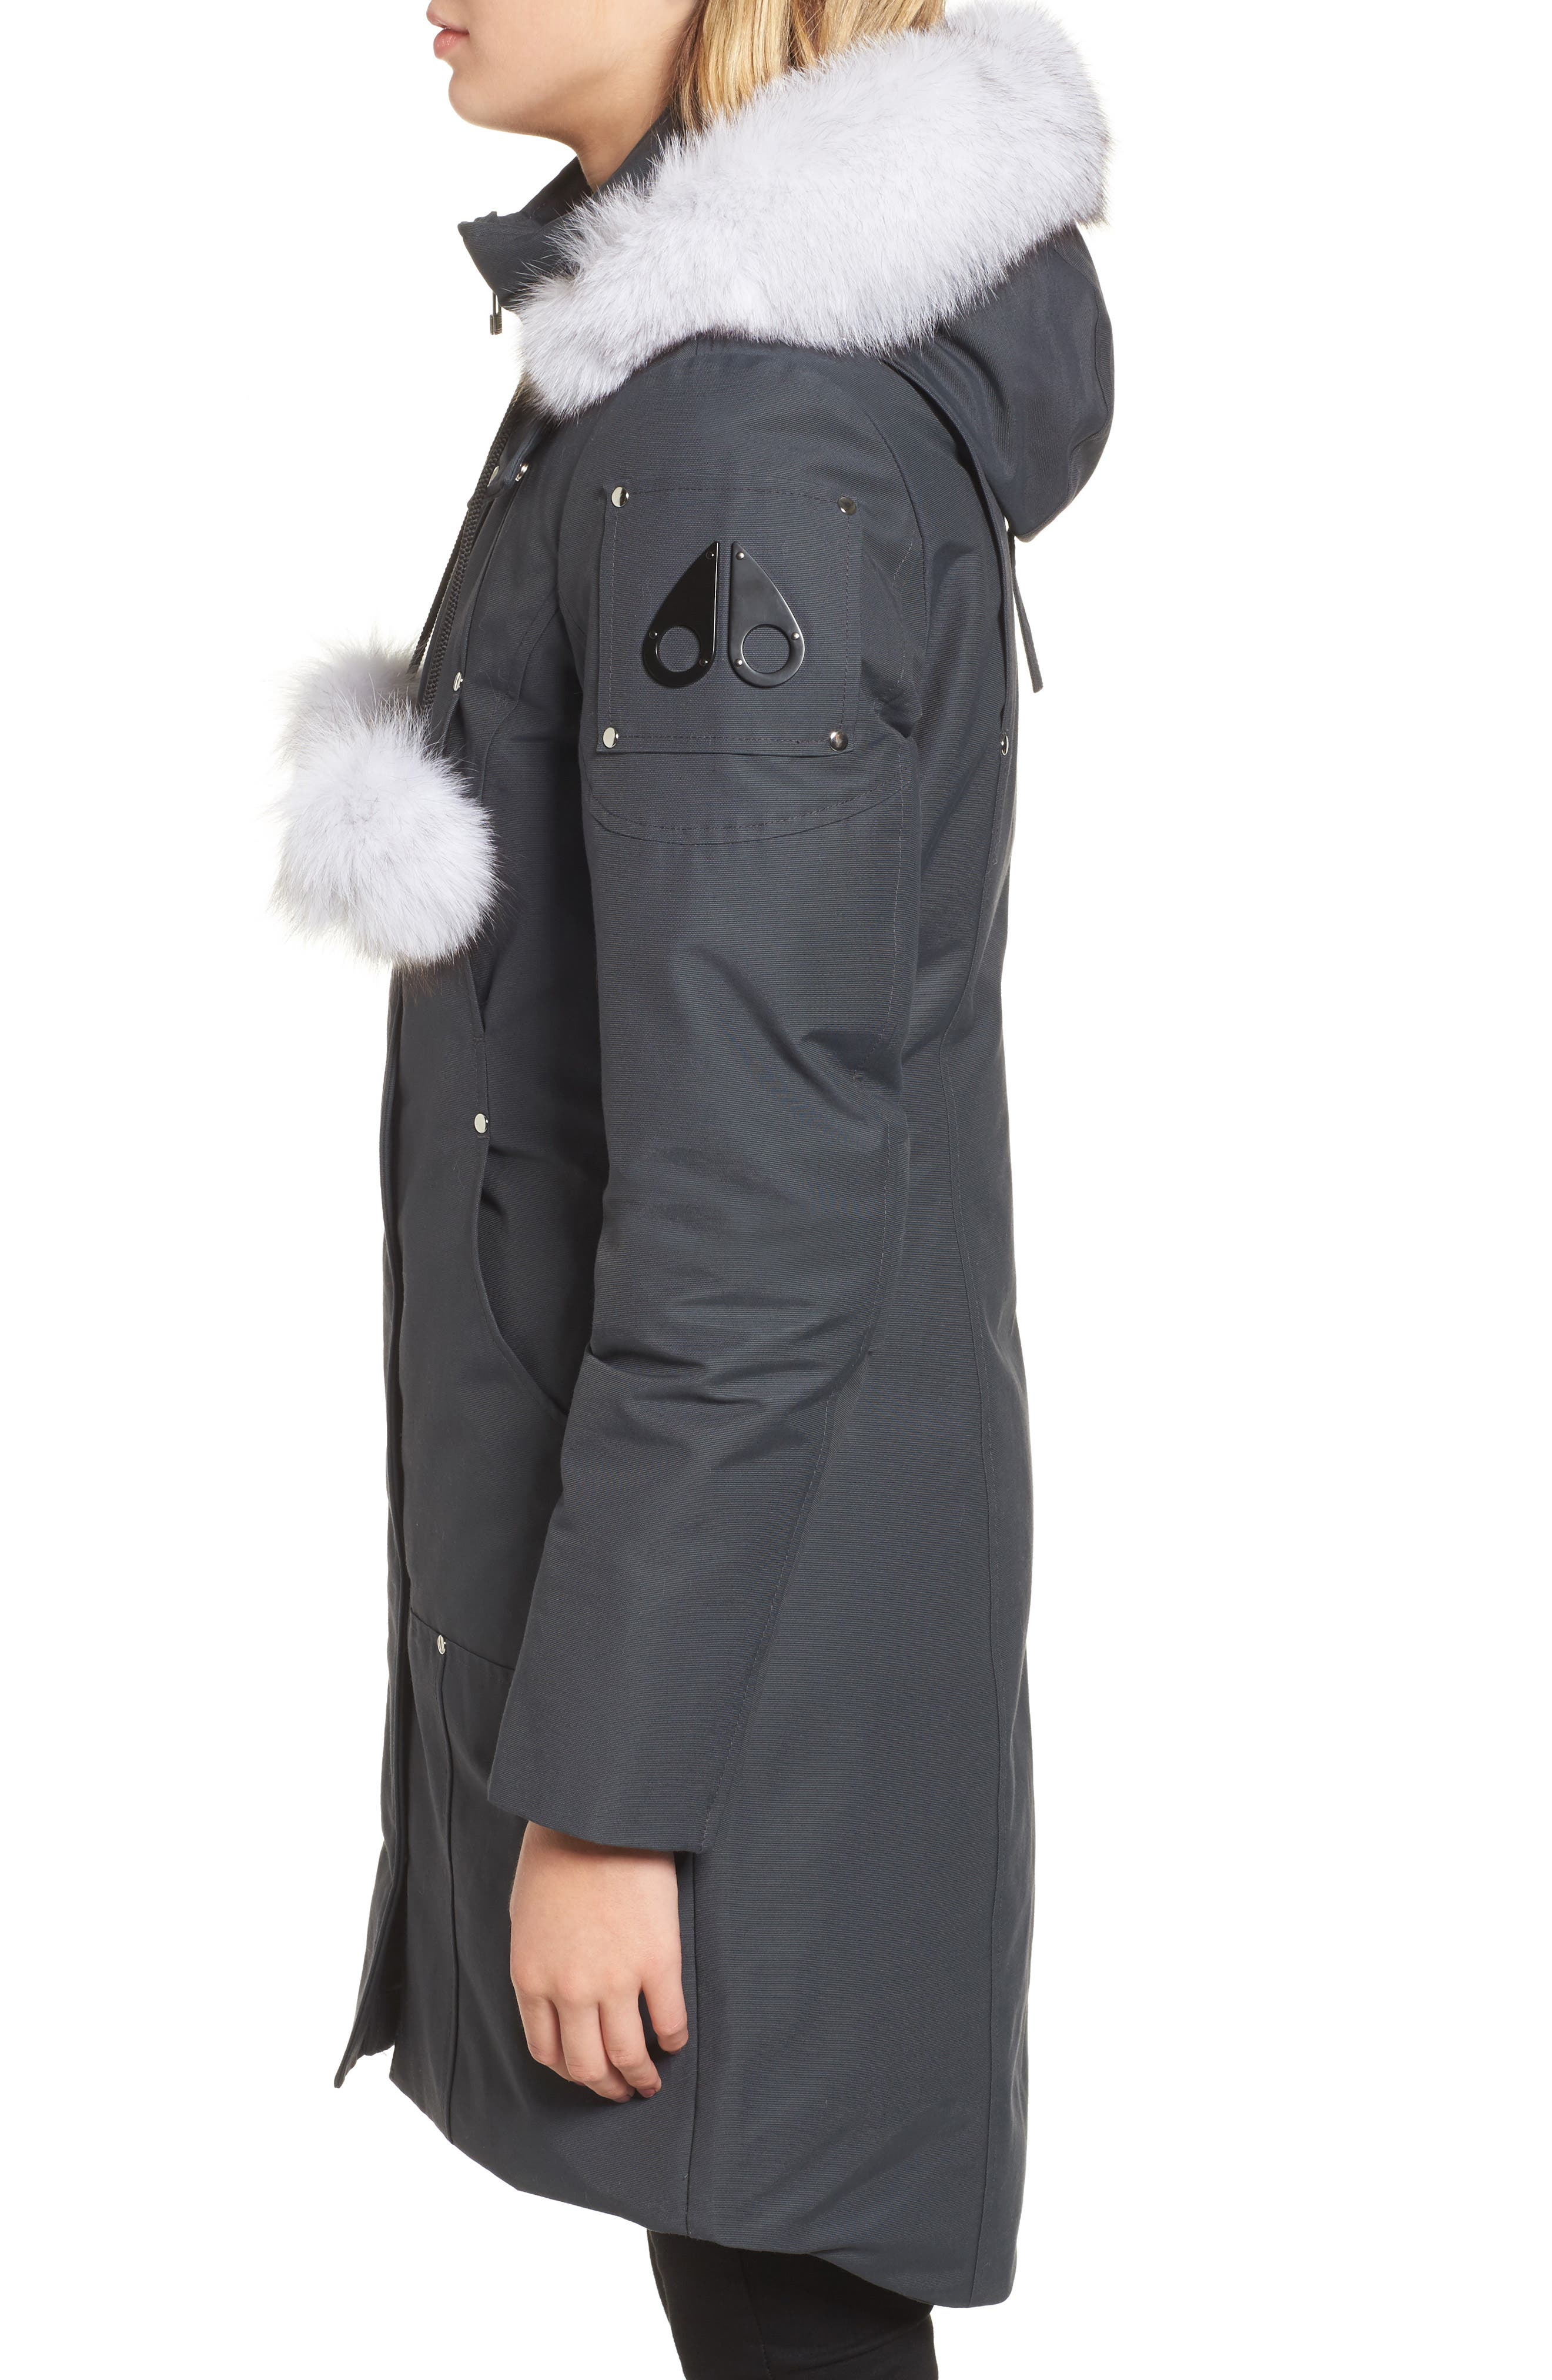 'Stirling' Down Parka with Genuine Fox Fur Trim,                             Alternate thumbnail 3, color,                             Granite/ White Fur